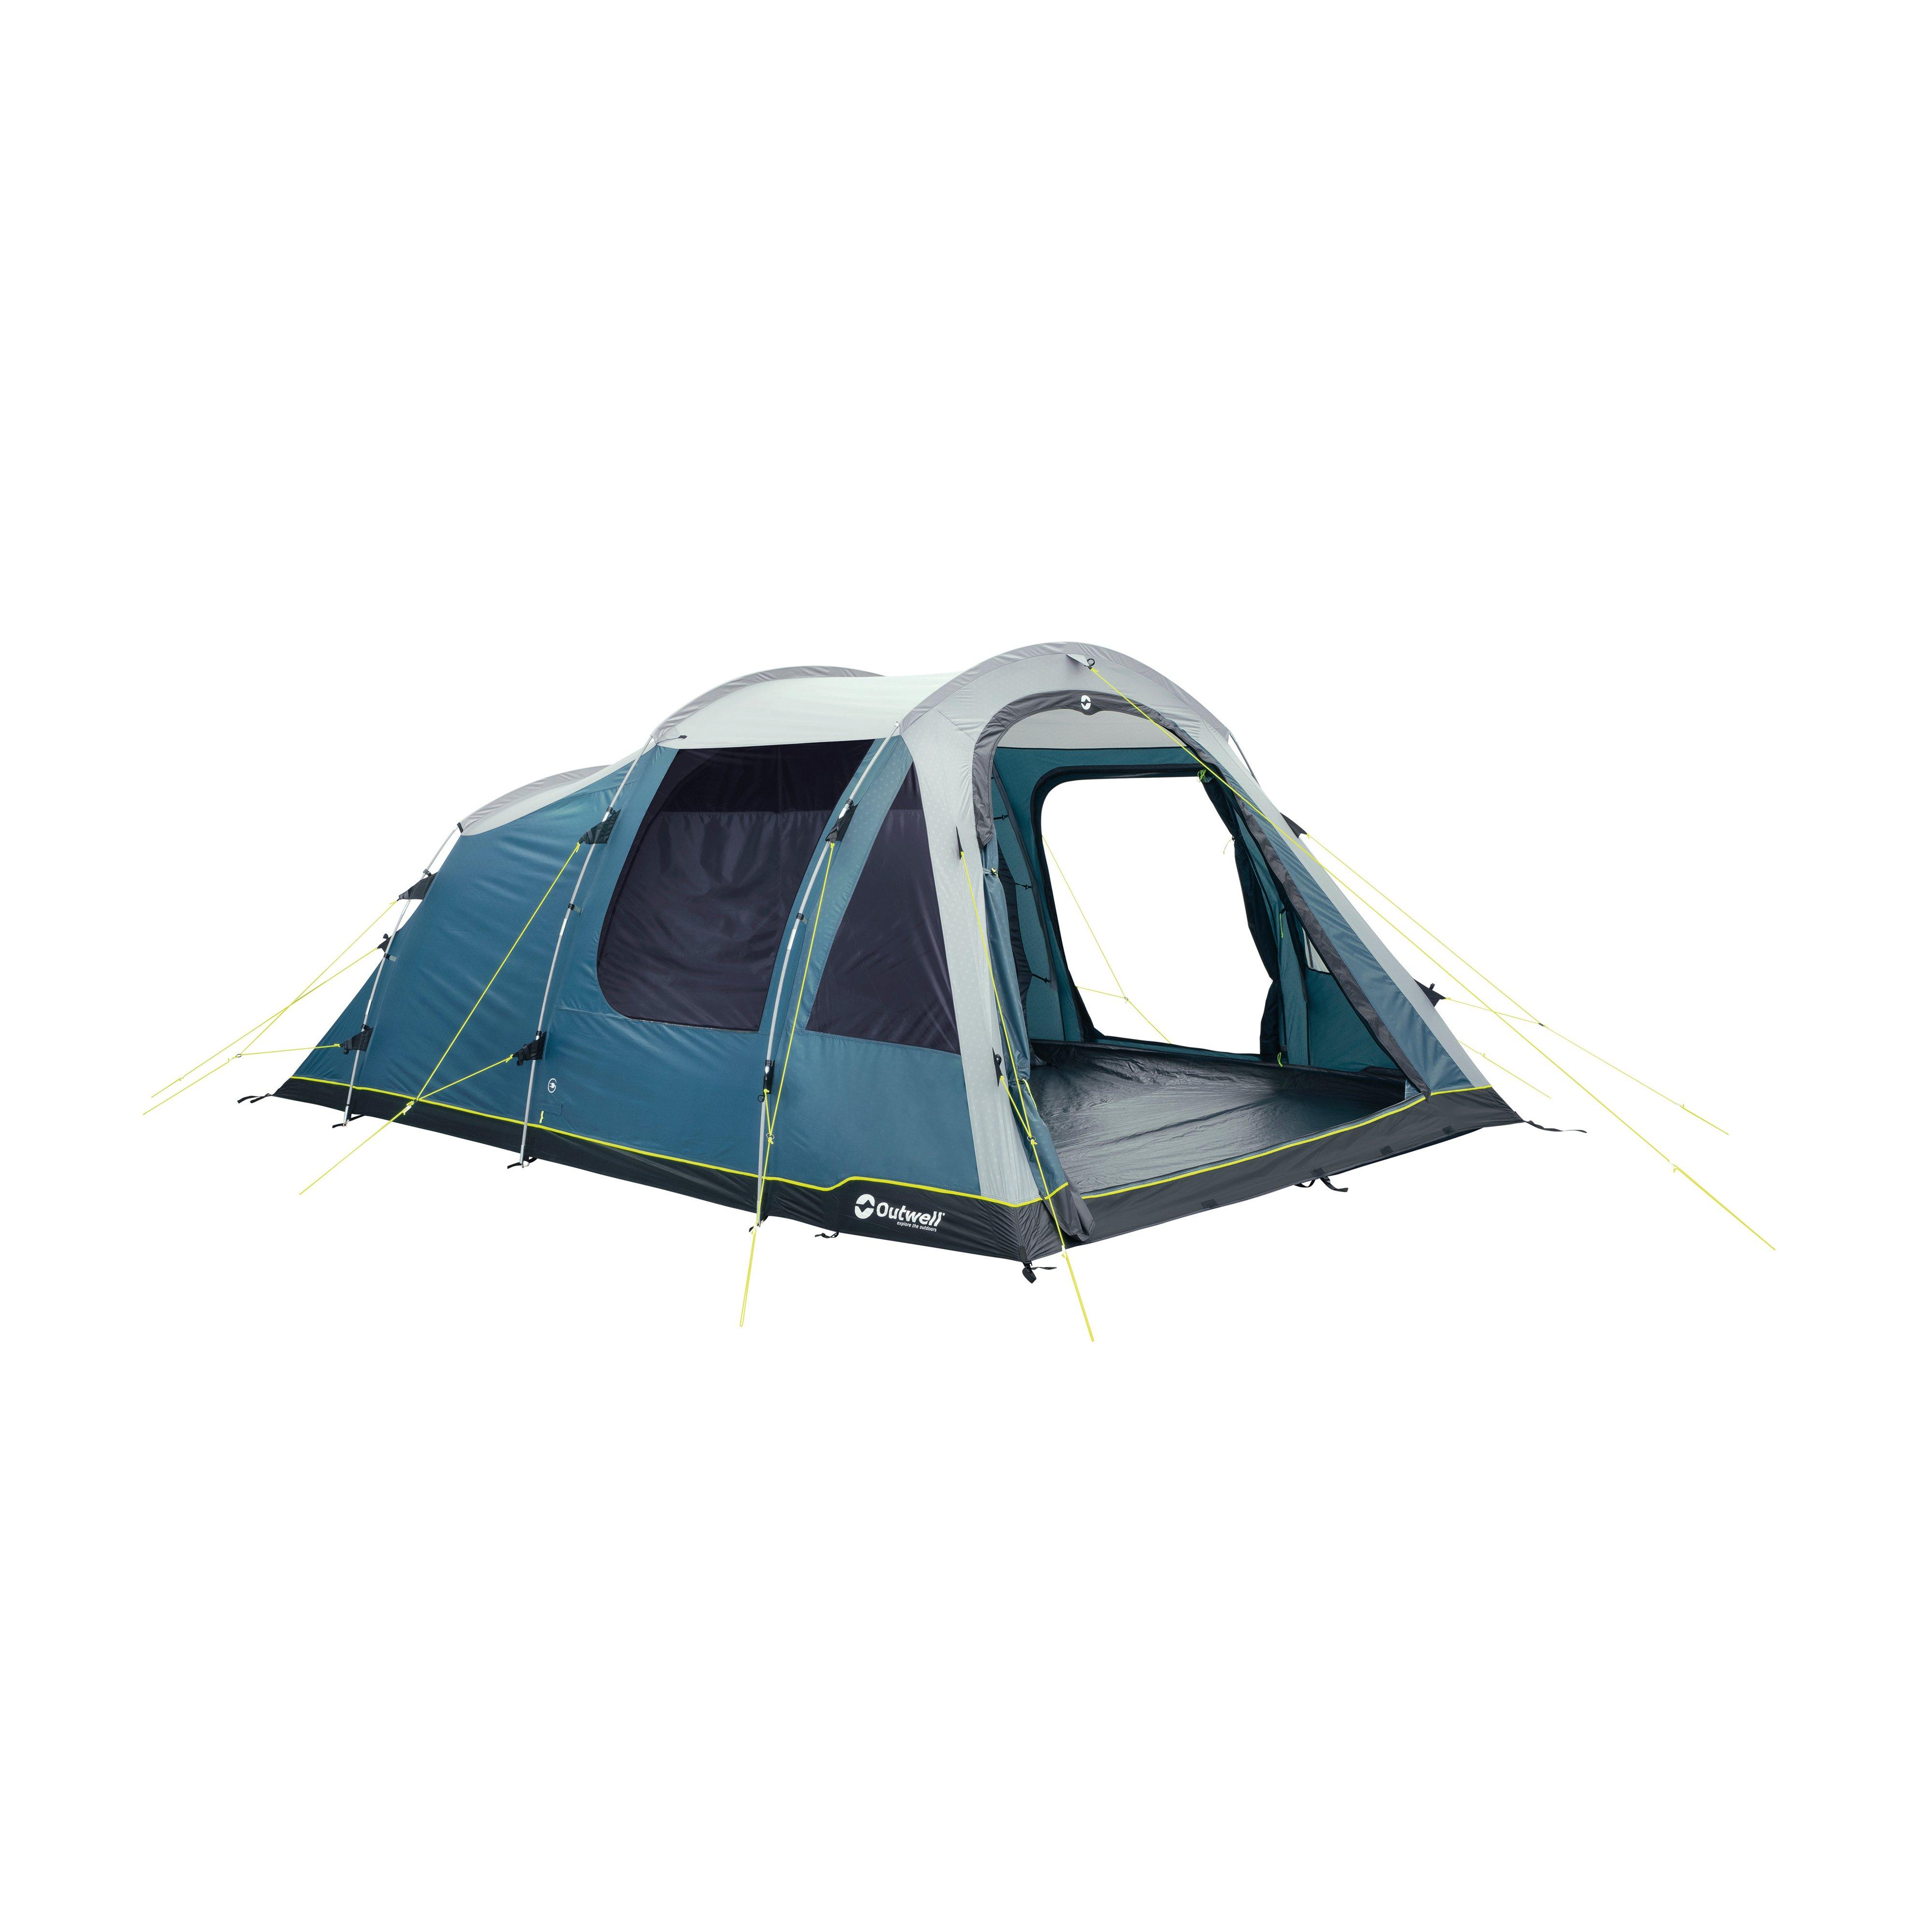 Outwell Outwell Escalon 5 Tent, Blue